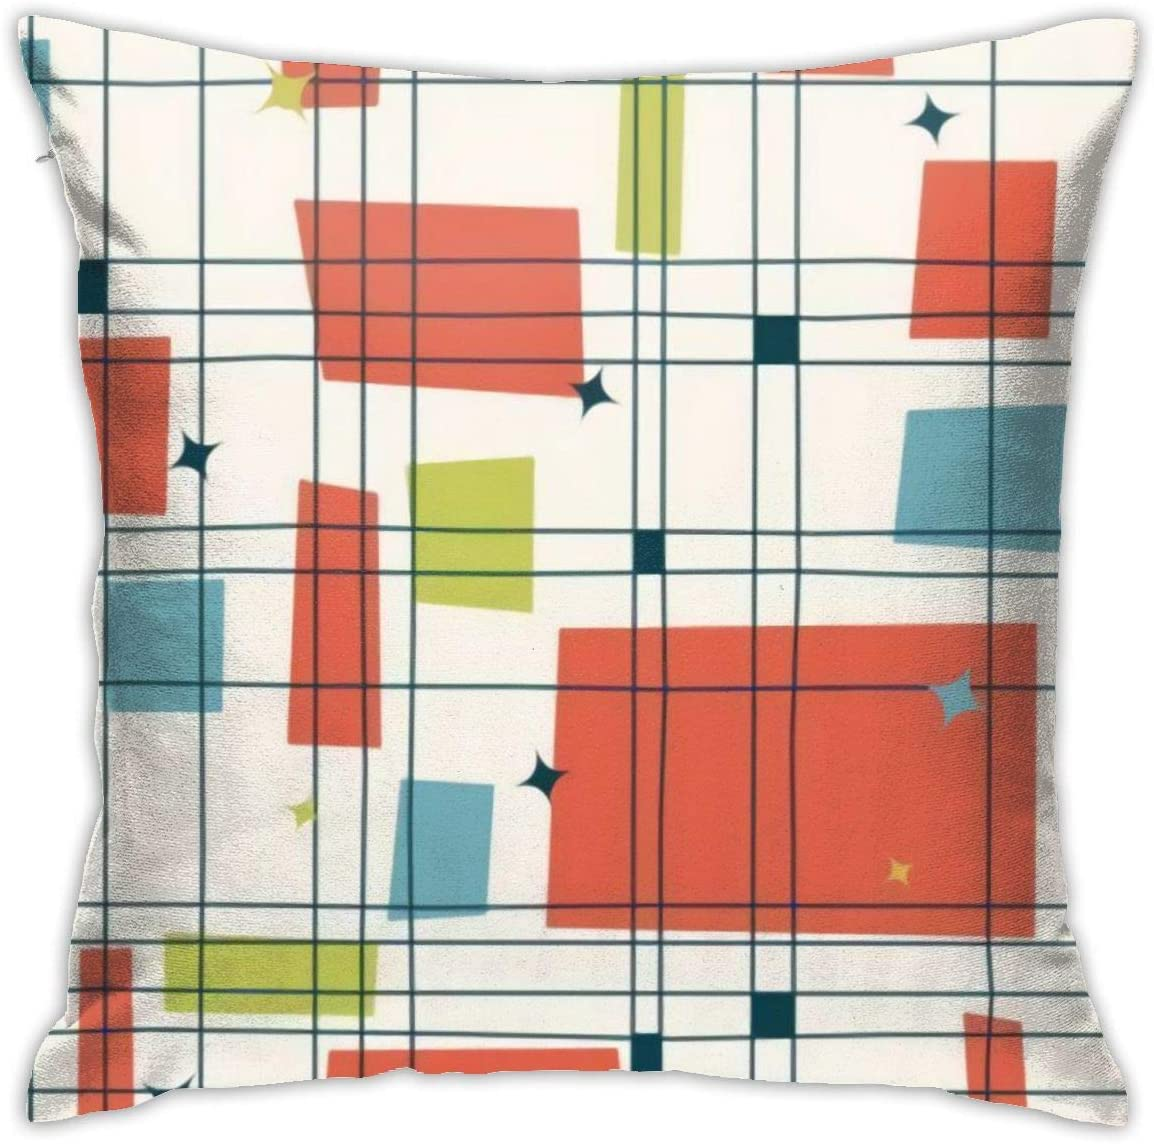 Abstract Mid Century Modern Grid Pillows Case Soft Throw Pillow Double-Sided Digital Printing Couch Pillowcase Square 45cm45cm